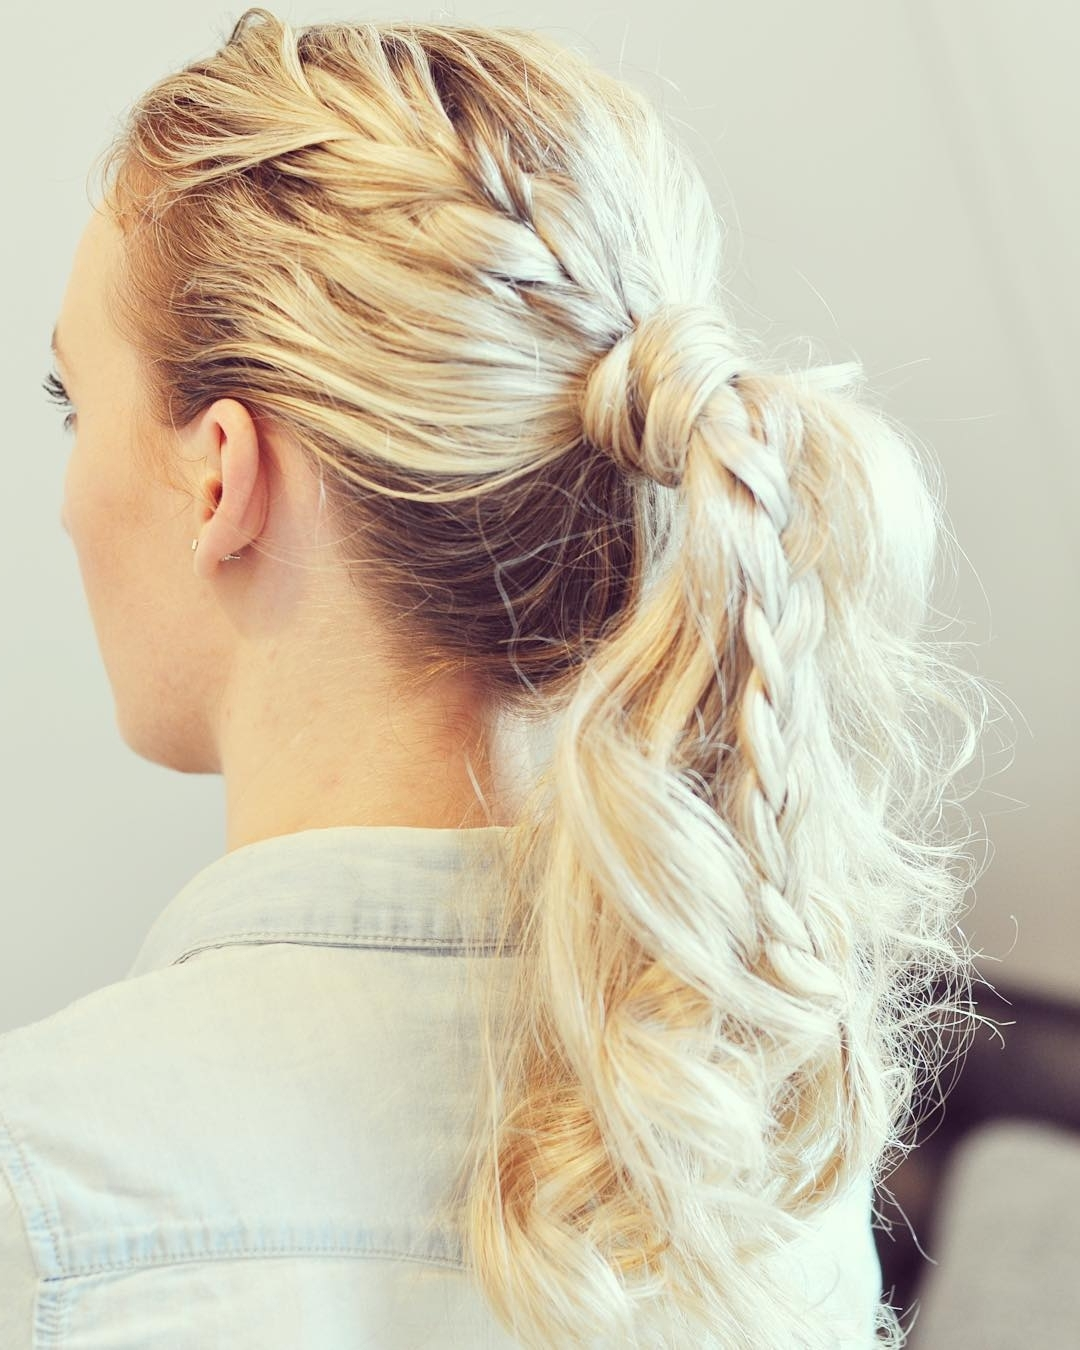 Famous Large And Loose Braid Hairstyles With A High Pony In 30 Braided Ponytail Hairstyles To Slay In (View 7 of 20)